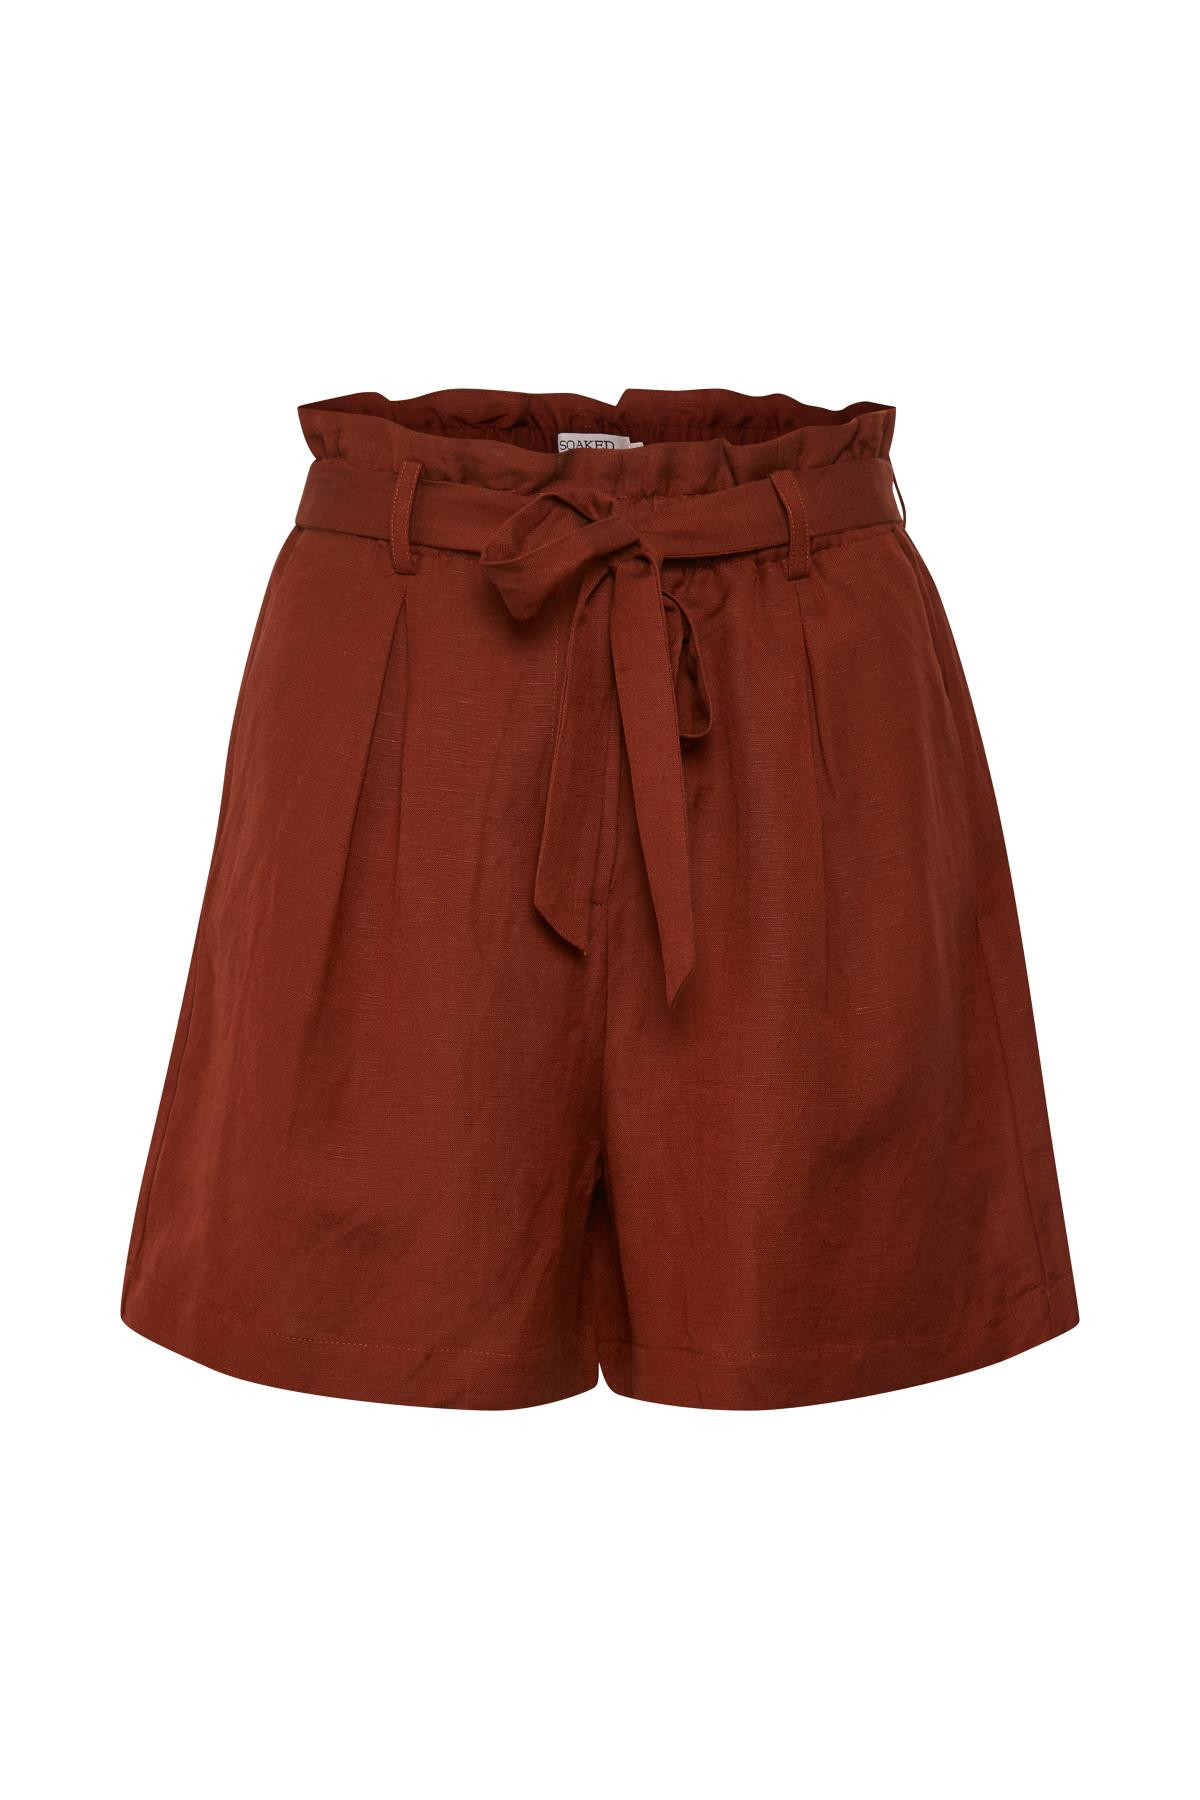 Image of   SOAKED IN LUXURY SL FAYETTE SHORTS 30404040 (Fired Brick 47021, XL)